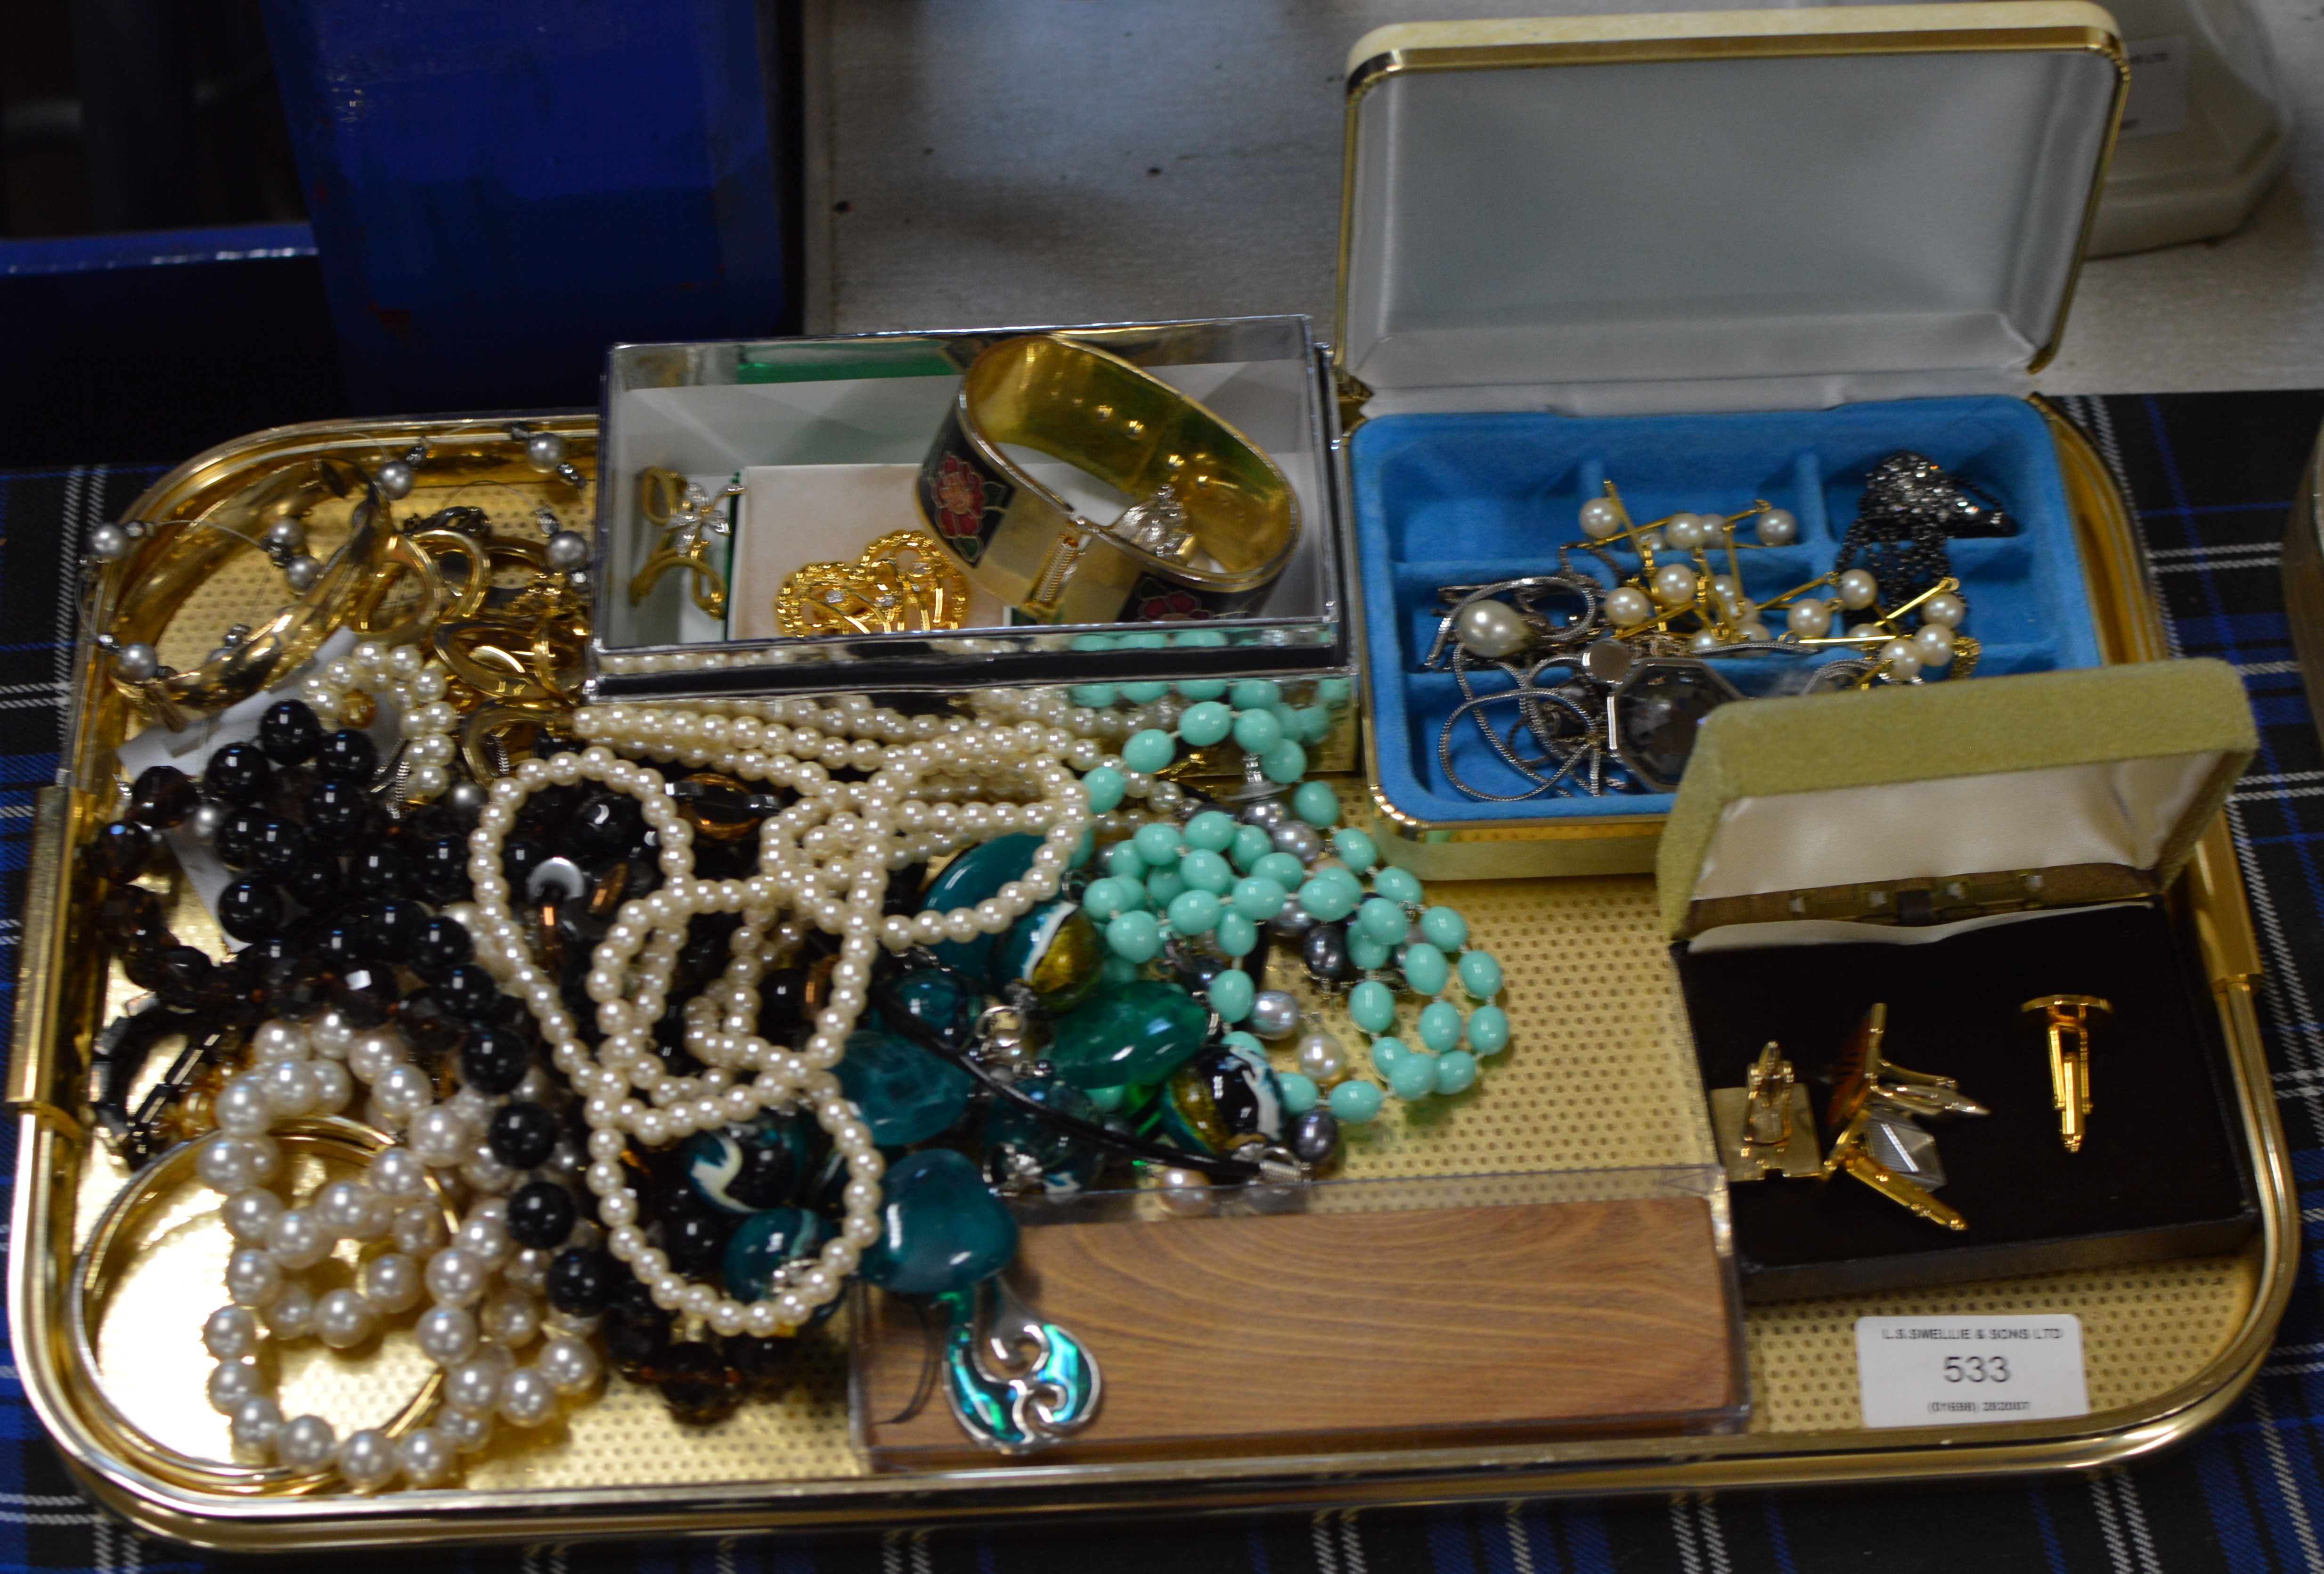 TRAY WITH ASSORTED COSTUME JEWELLERY, YELLOW METAL BANGLES, VARIOUS FAUX PEARLS, BEADS, CUFFLINKS